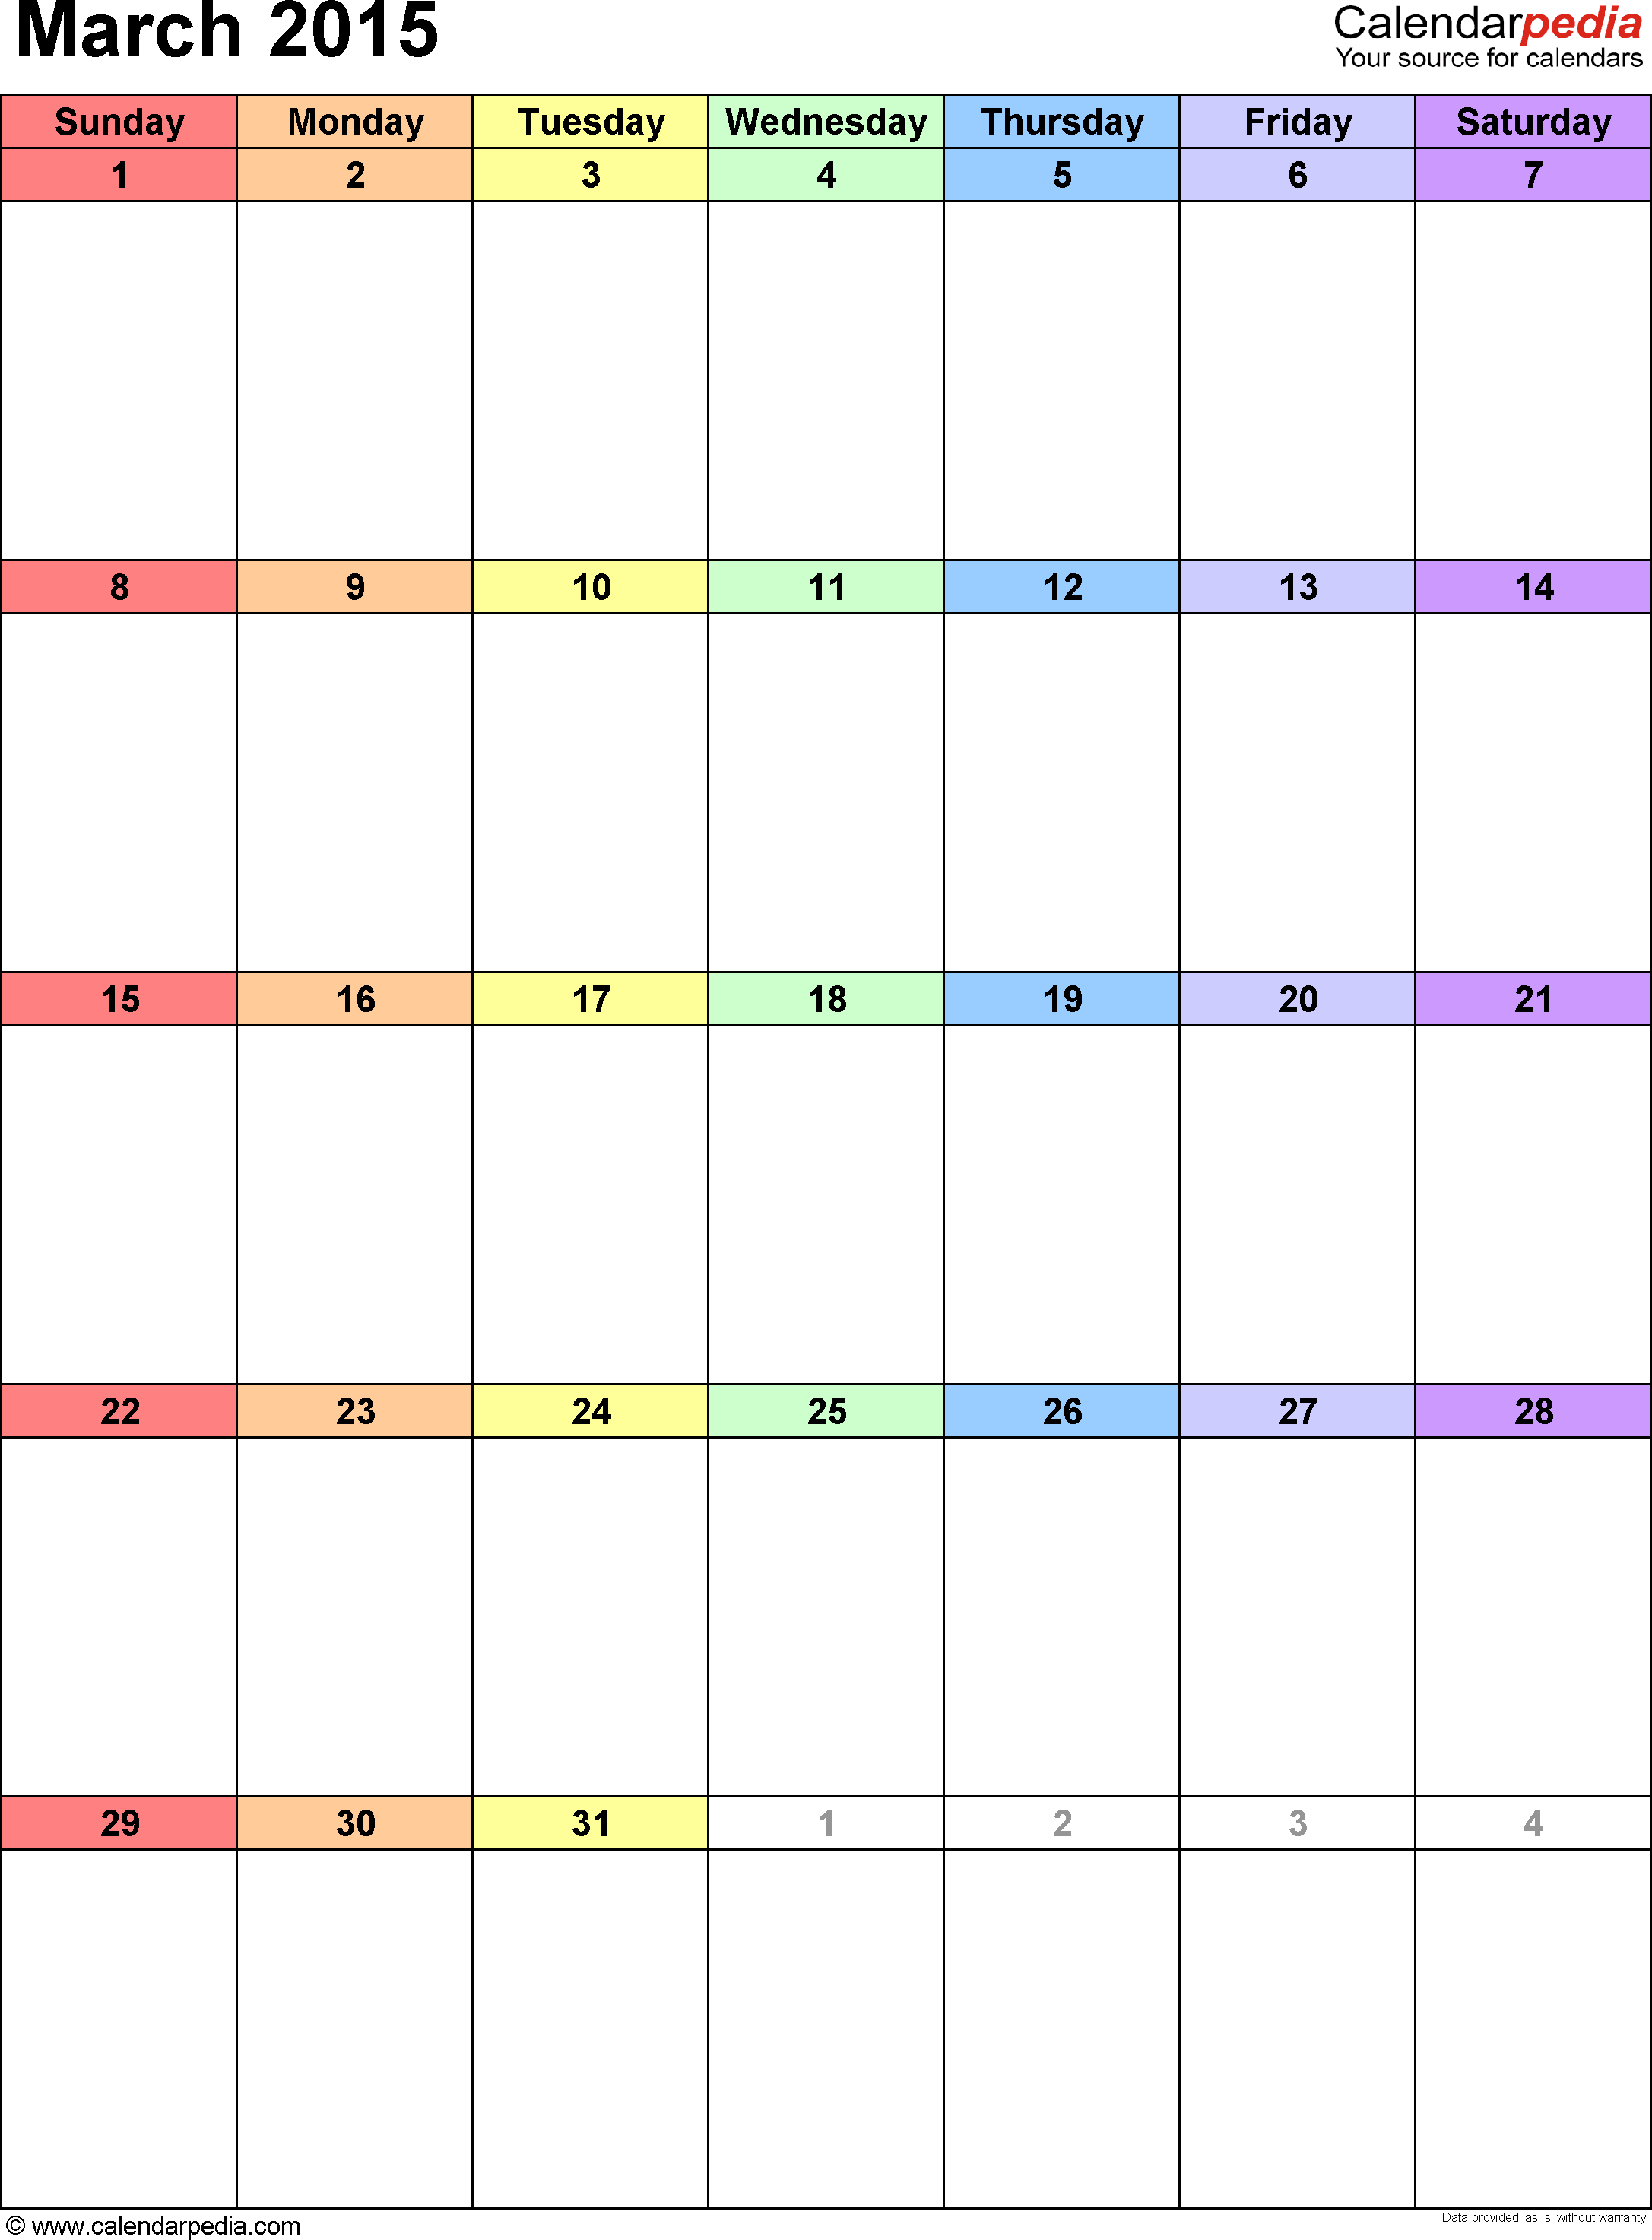 March 2015 calendar as printable Word, Excel & PDF templates